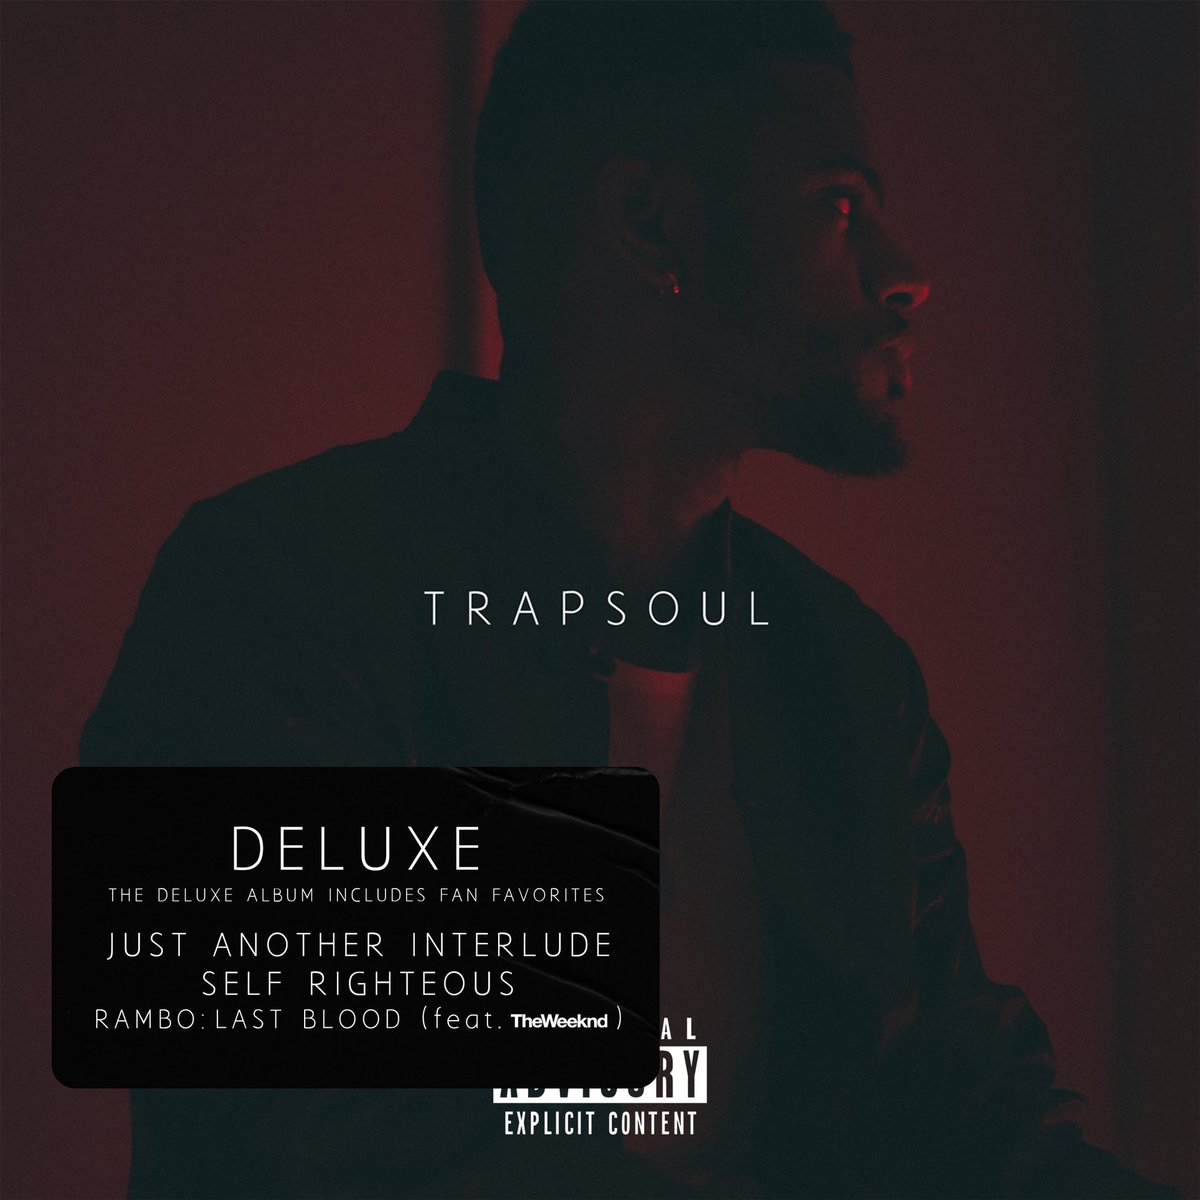 before we get into my new album, I wanna celebrate with this special edition of my debut album, Trapsoul. Featuring a few songs that didn't quite make the cut. Y'all asked for these on All Platforms and they'll finally be yours this Friday. thank you! https://t.co/8MJ5rC5jYB